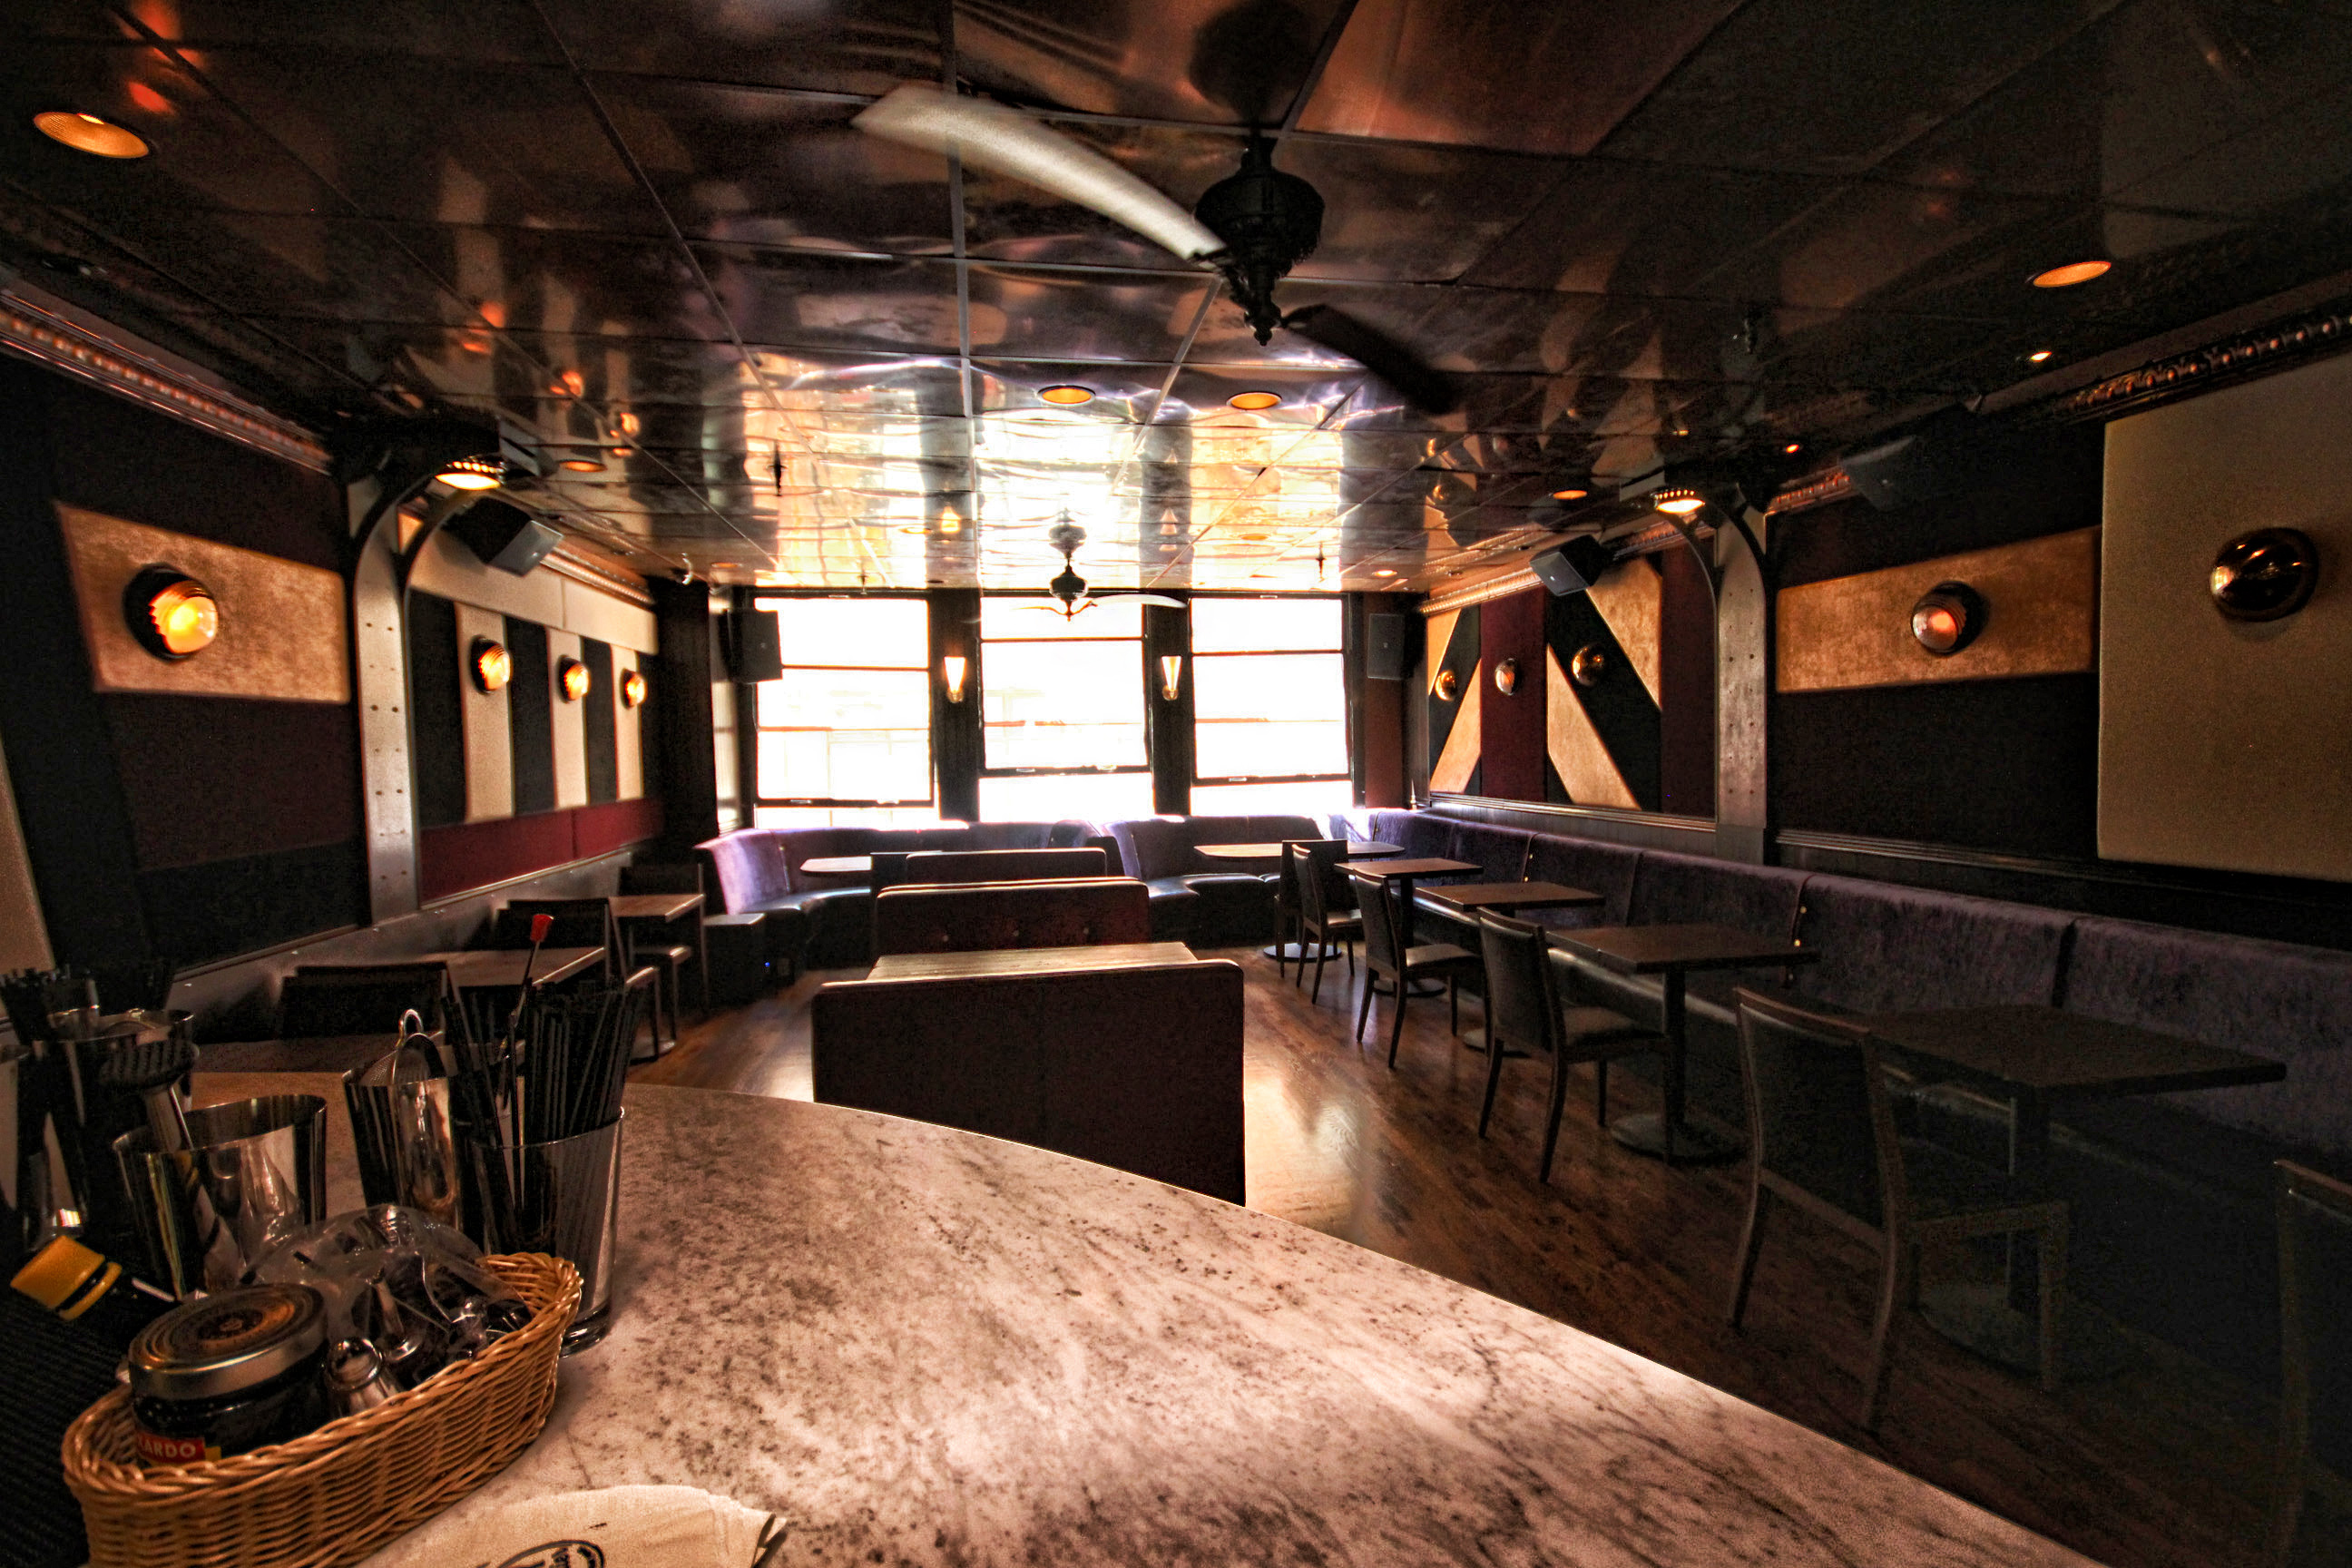 Upstairs Dining Room & Lounge event space at Toy Soldier in San Francisco, SF Bay Area, San Fran